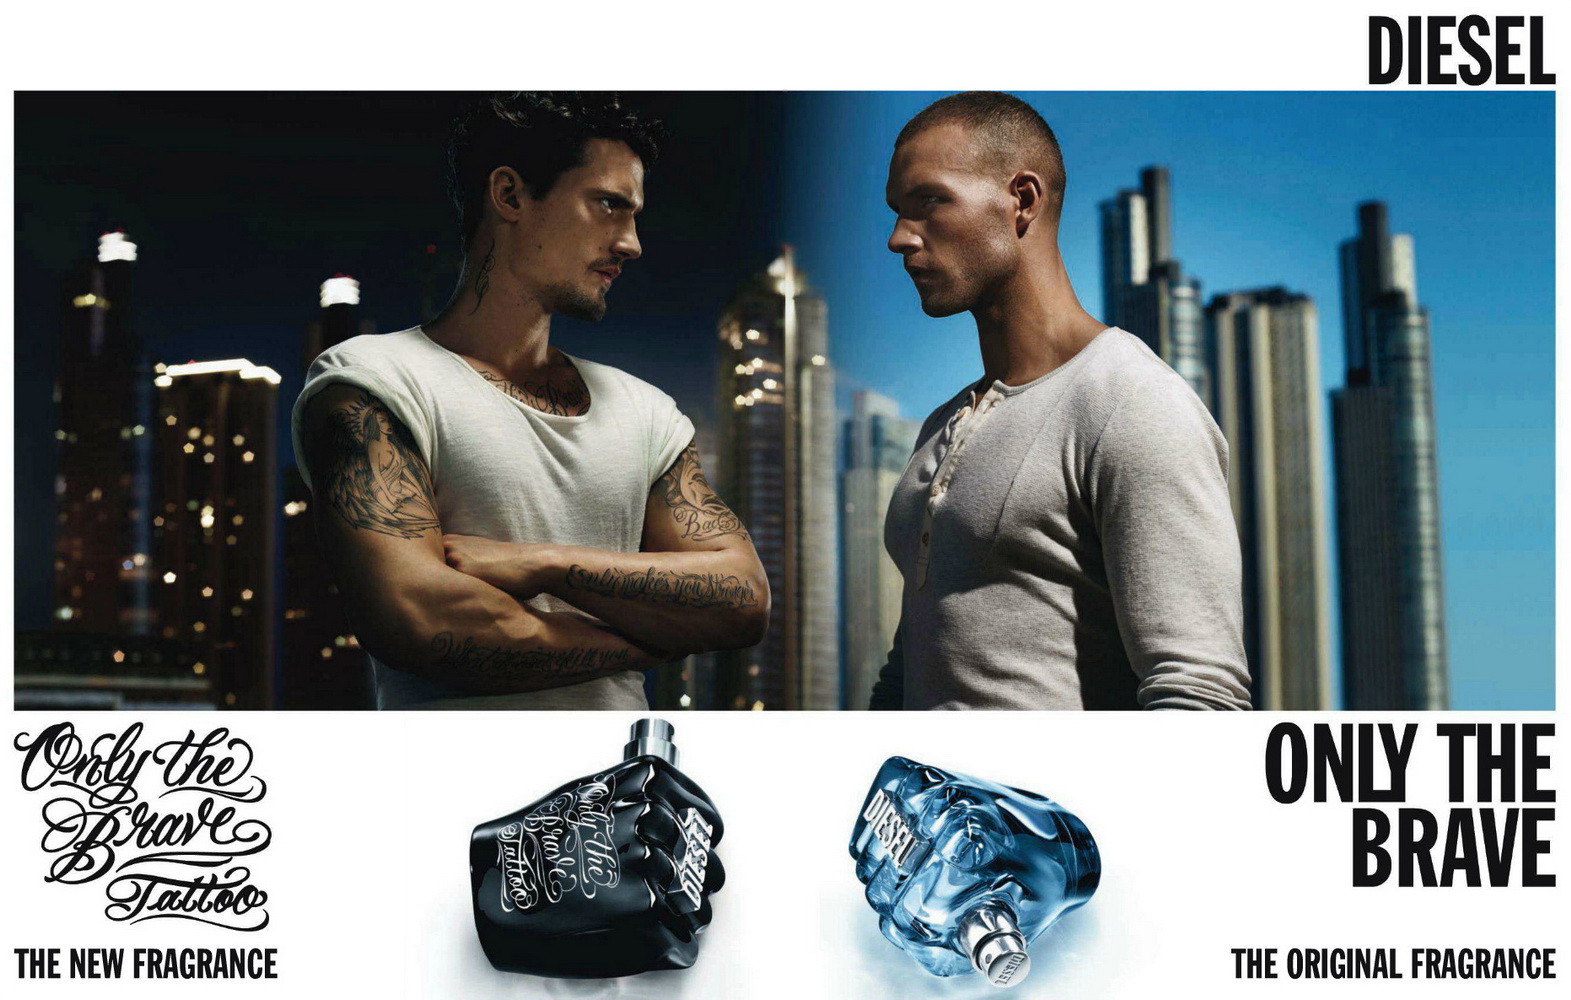 diesel only the brave tattoo 200ml eau de toilette spray. Black Bedroom Furniture Sets. Home Design Ideas